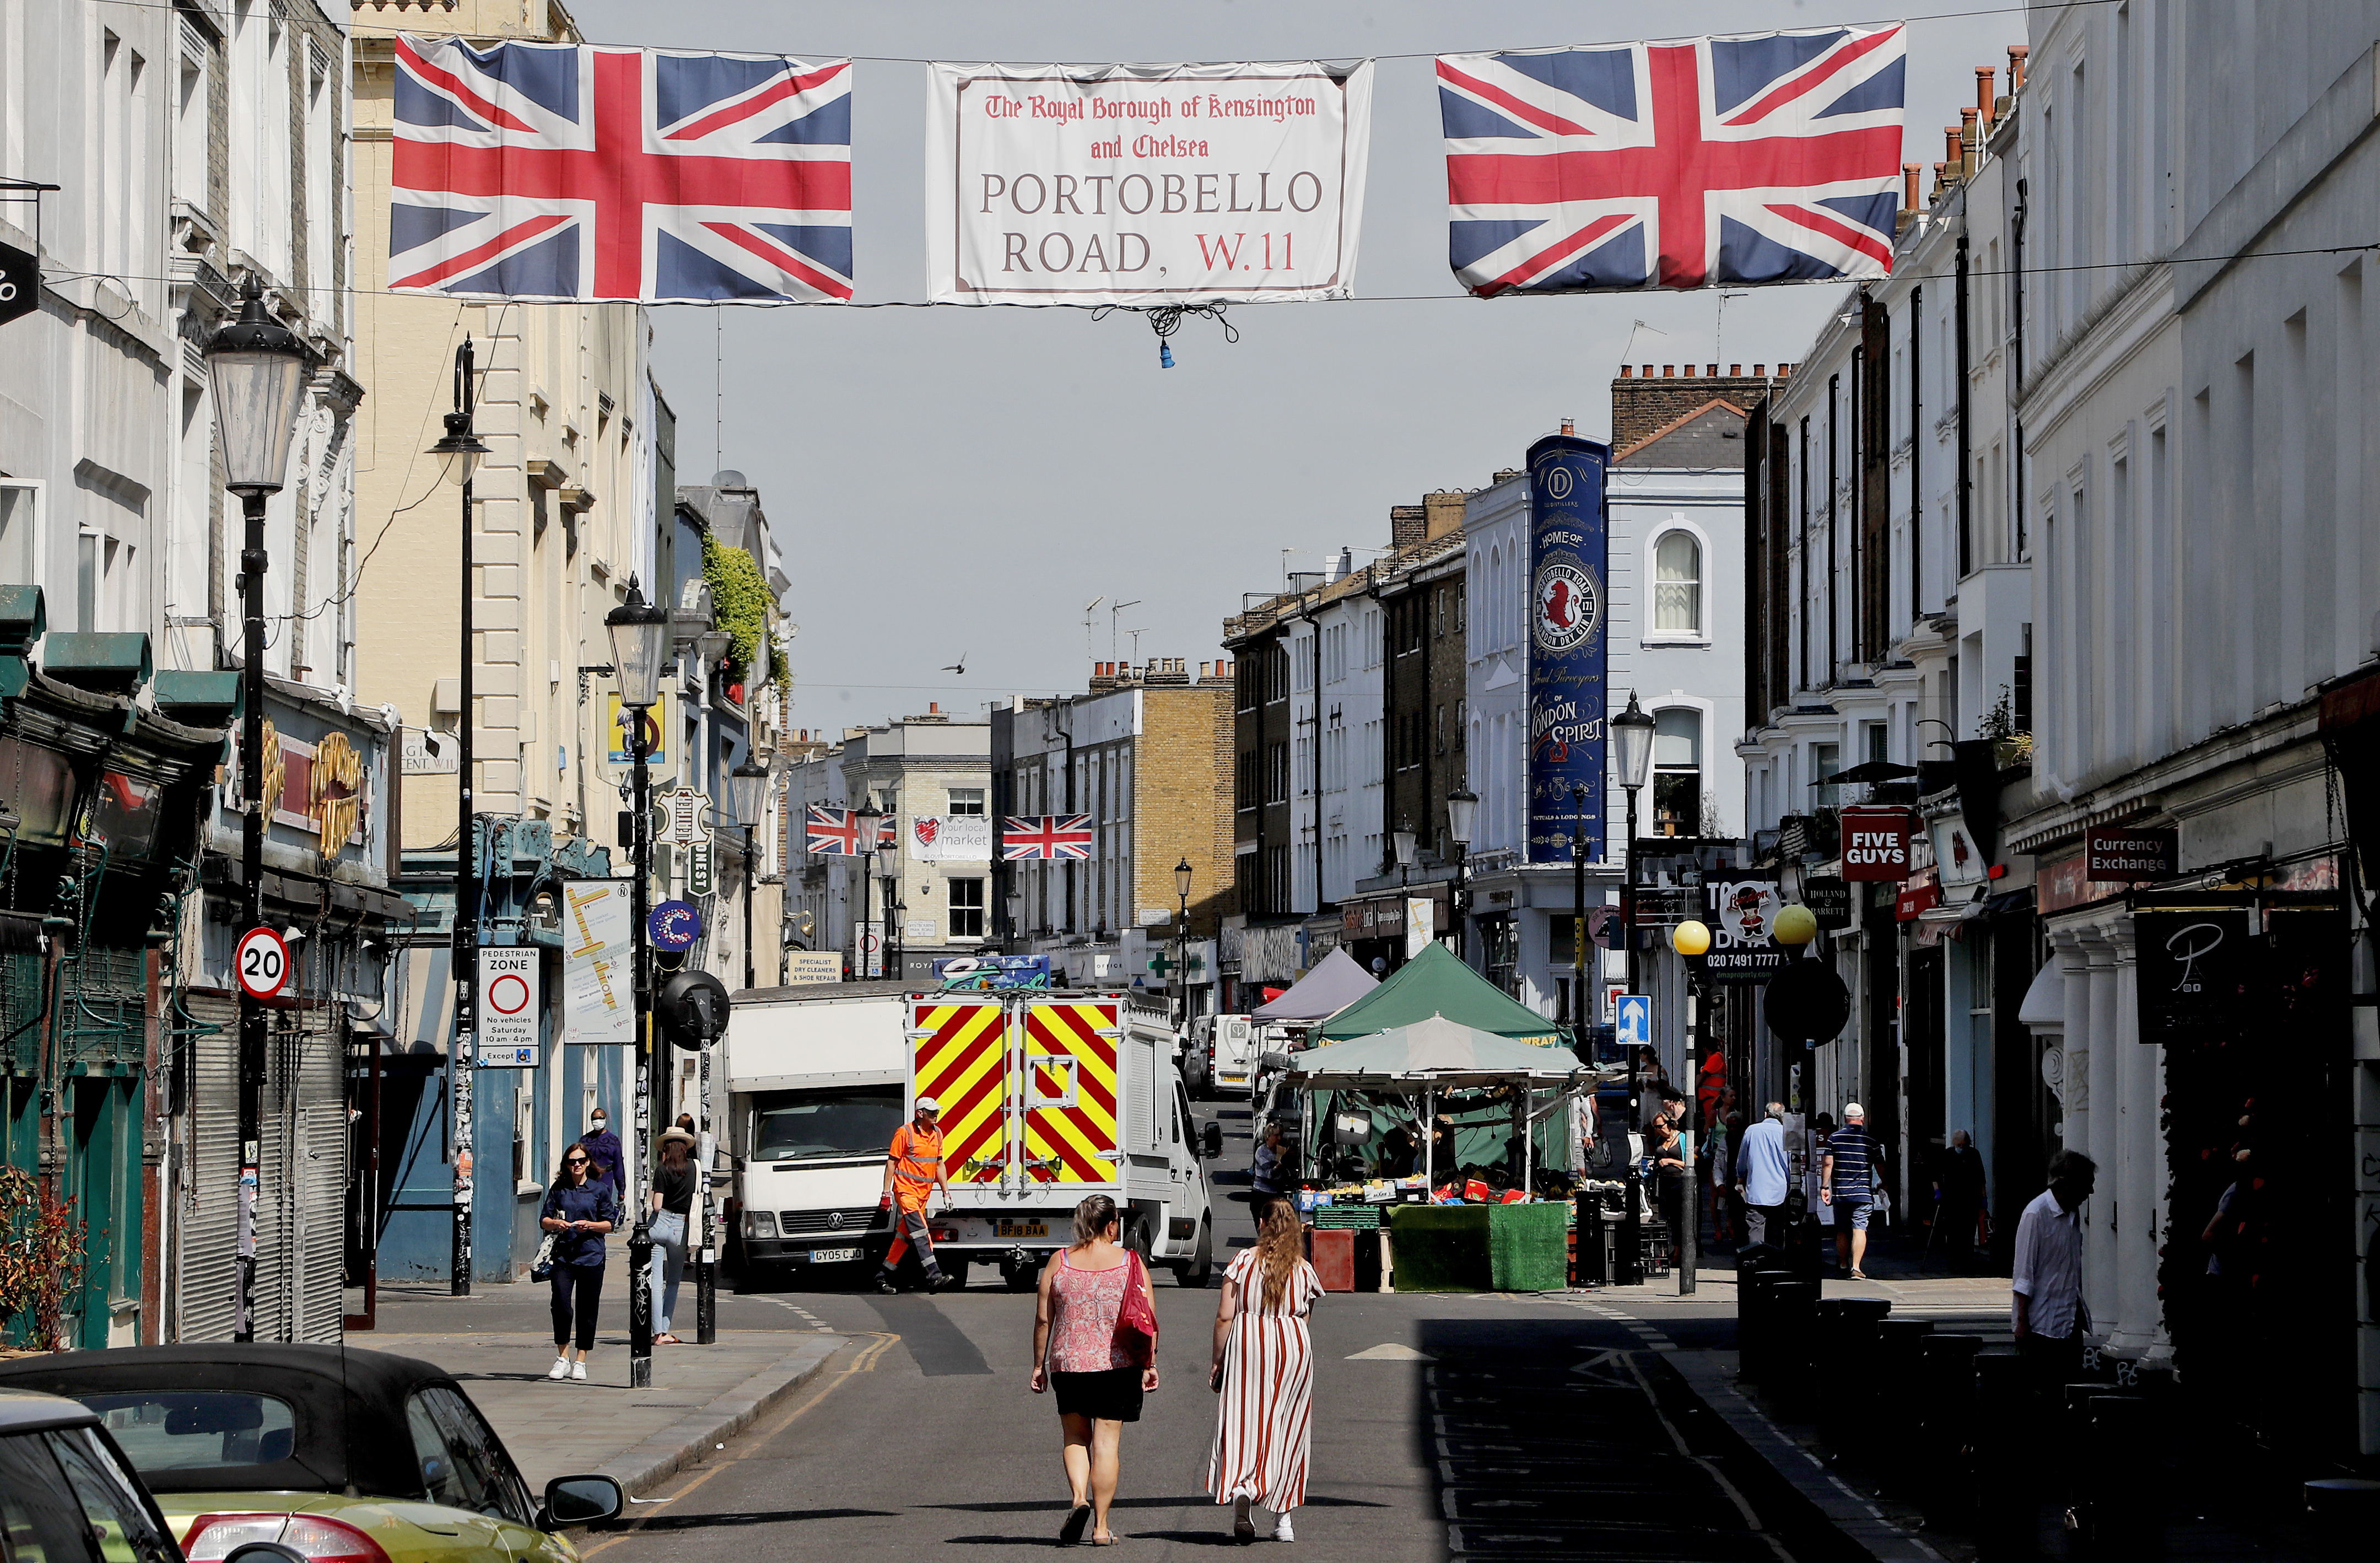 People walk along Portobello Road Market in London, Wednesday, May 27, 2020. Following the gradual easing of the COVID-19 lockdown, street markets will be allowed to reopen in Britain from Monday onwards. (AP Photo/Frank Augstein)